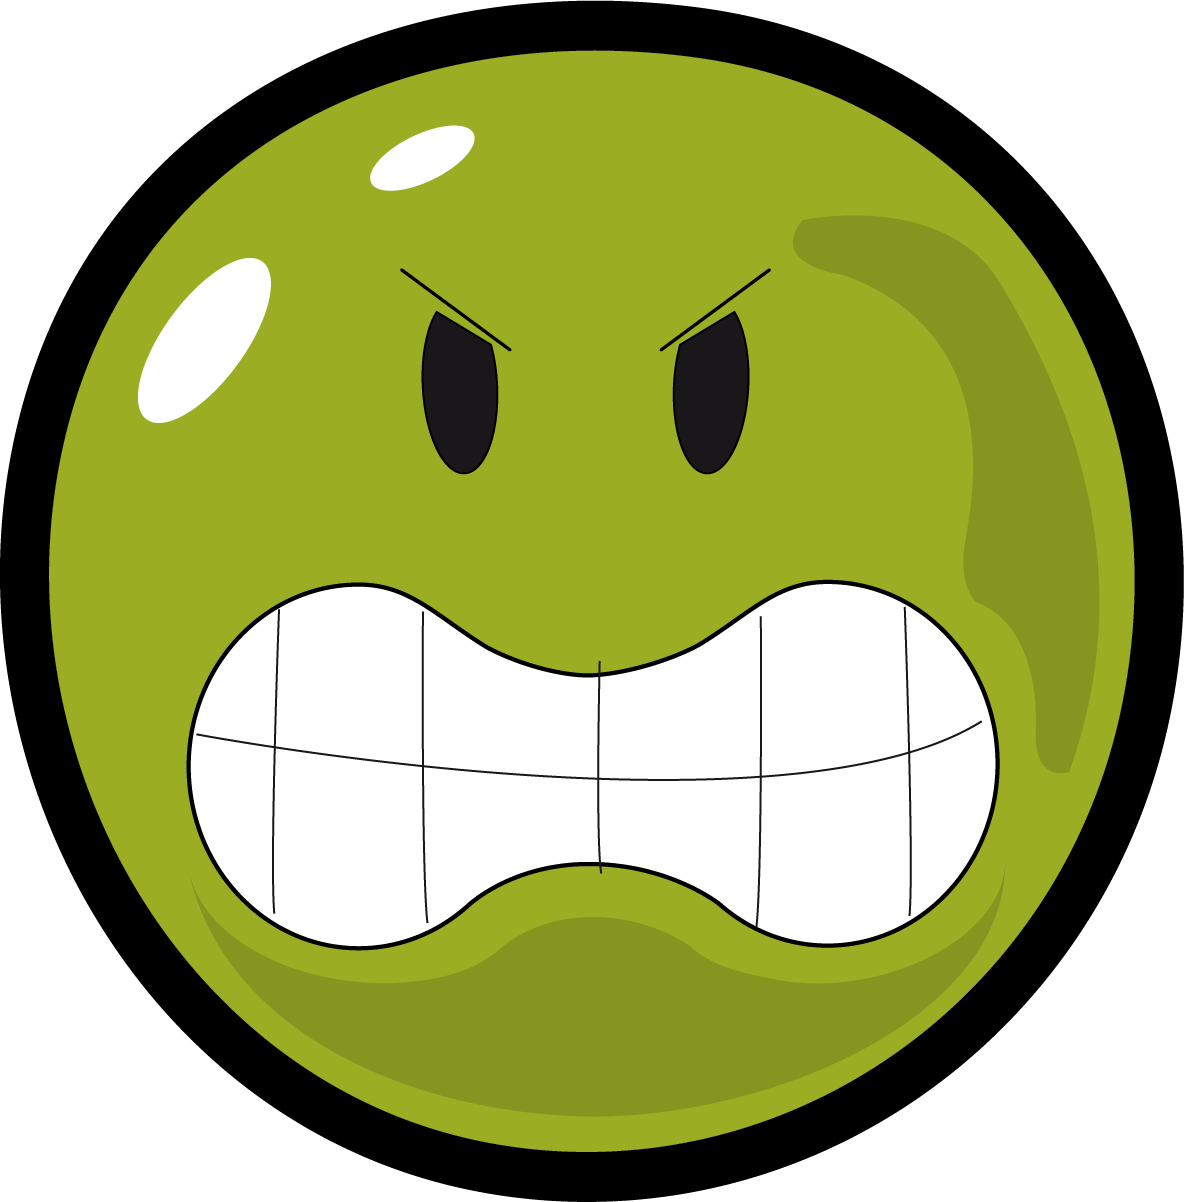 picture royalty free library Angry clipart angry face. Smiley clipartly comclipartly com.